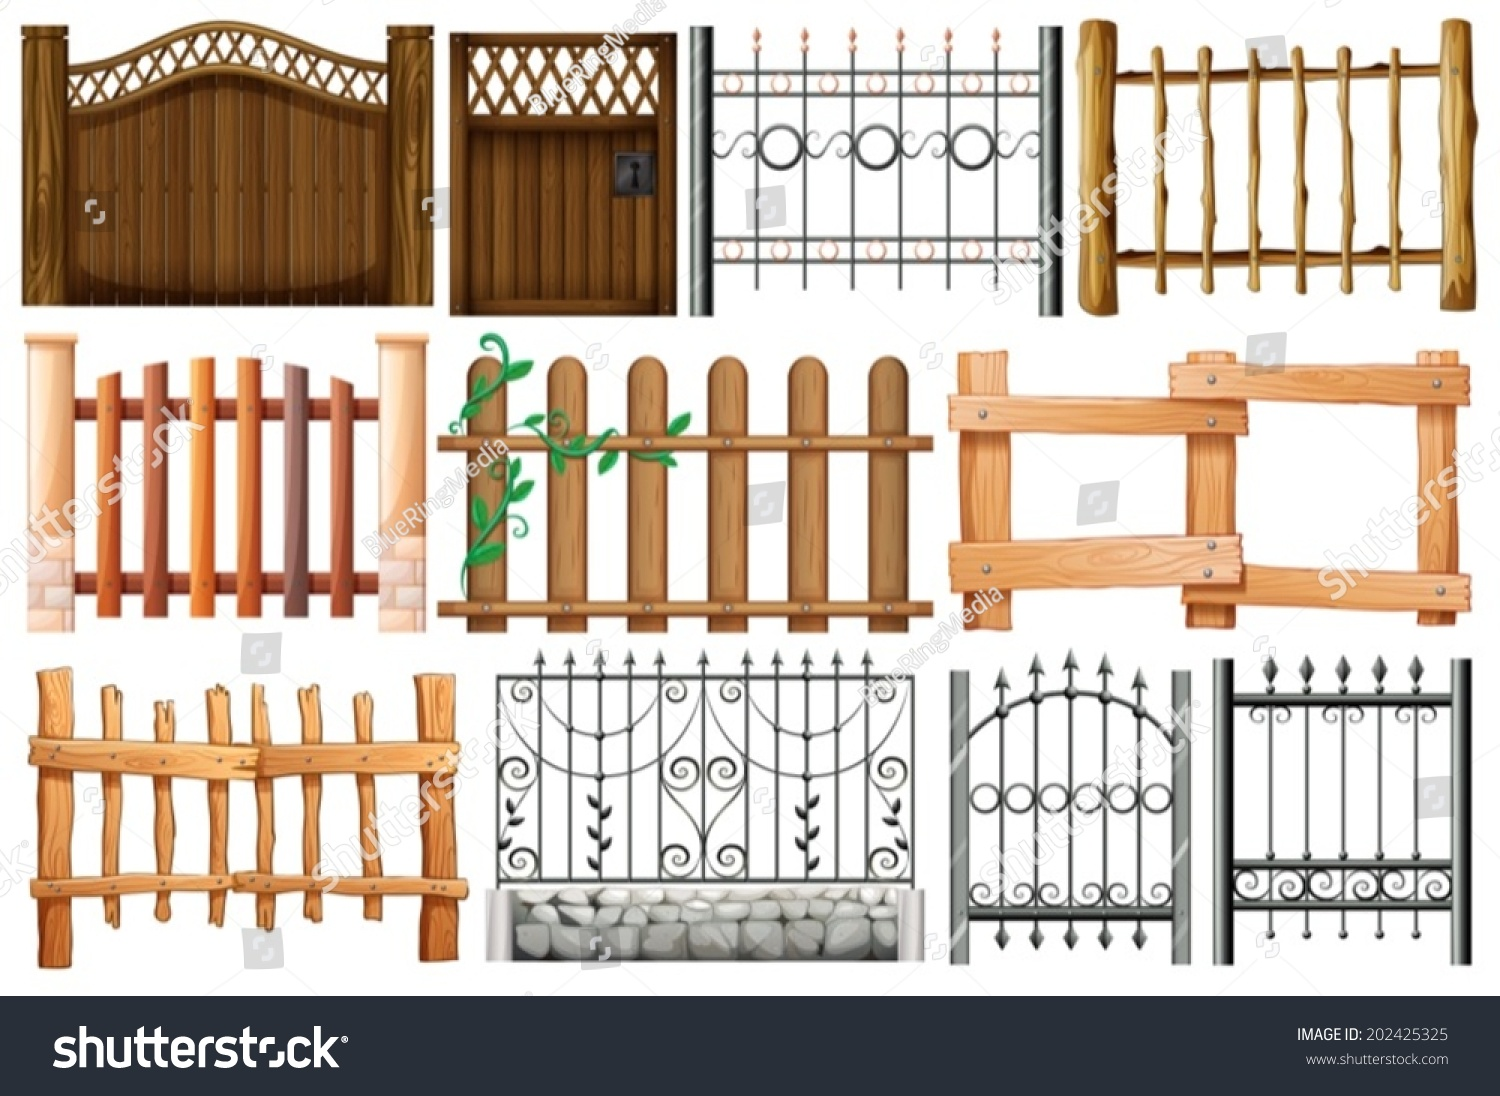 Illustration Different Designs Fences Gates On Stock